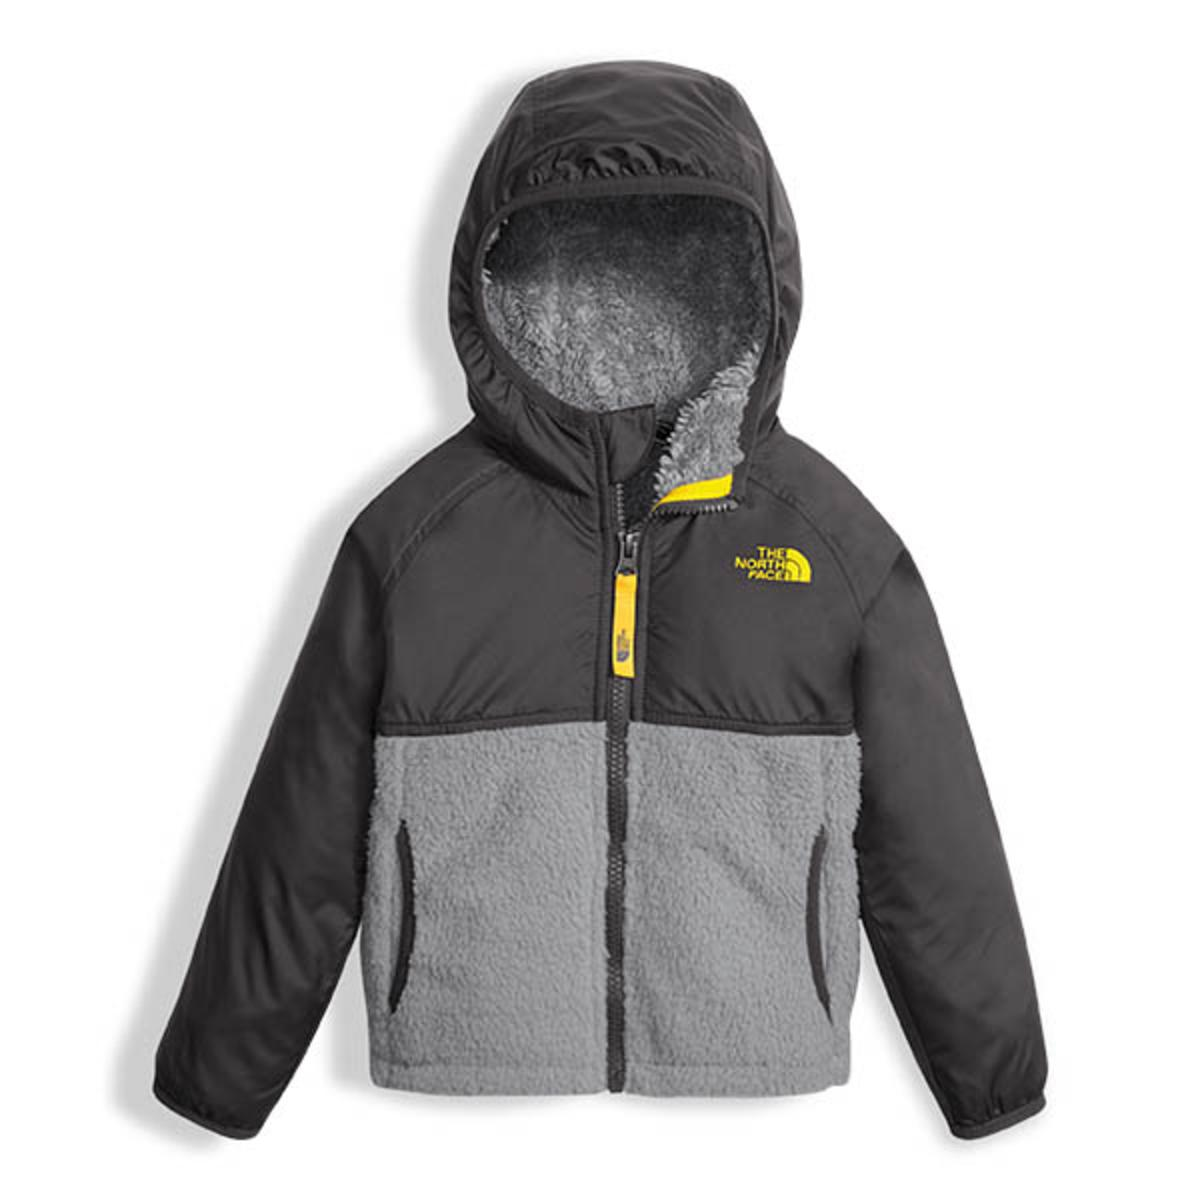 30aba4343 The North Face Toddler Boys Sherparazo Hoodie - The Warming Store